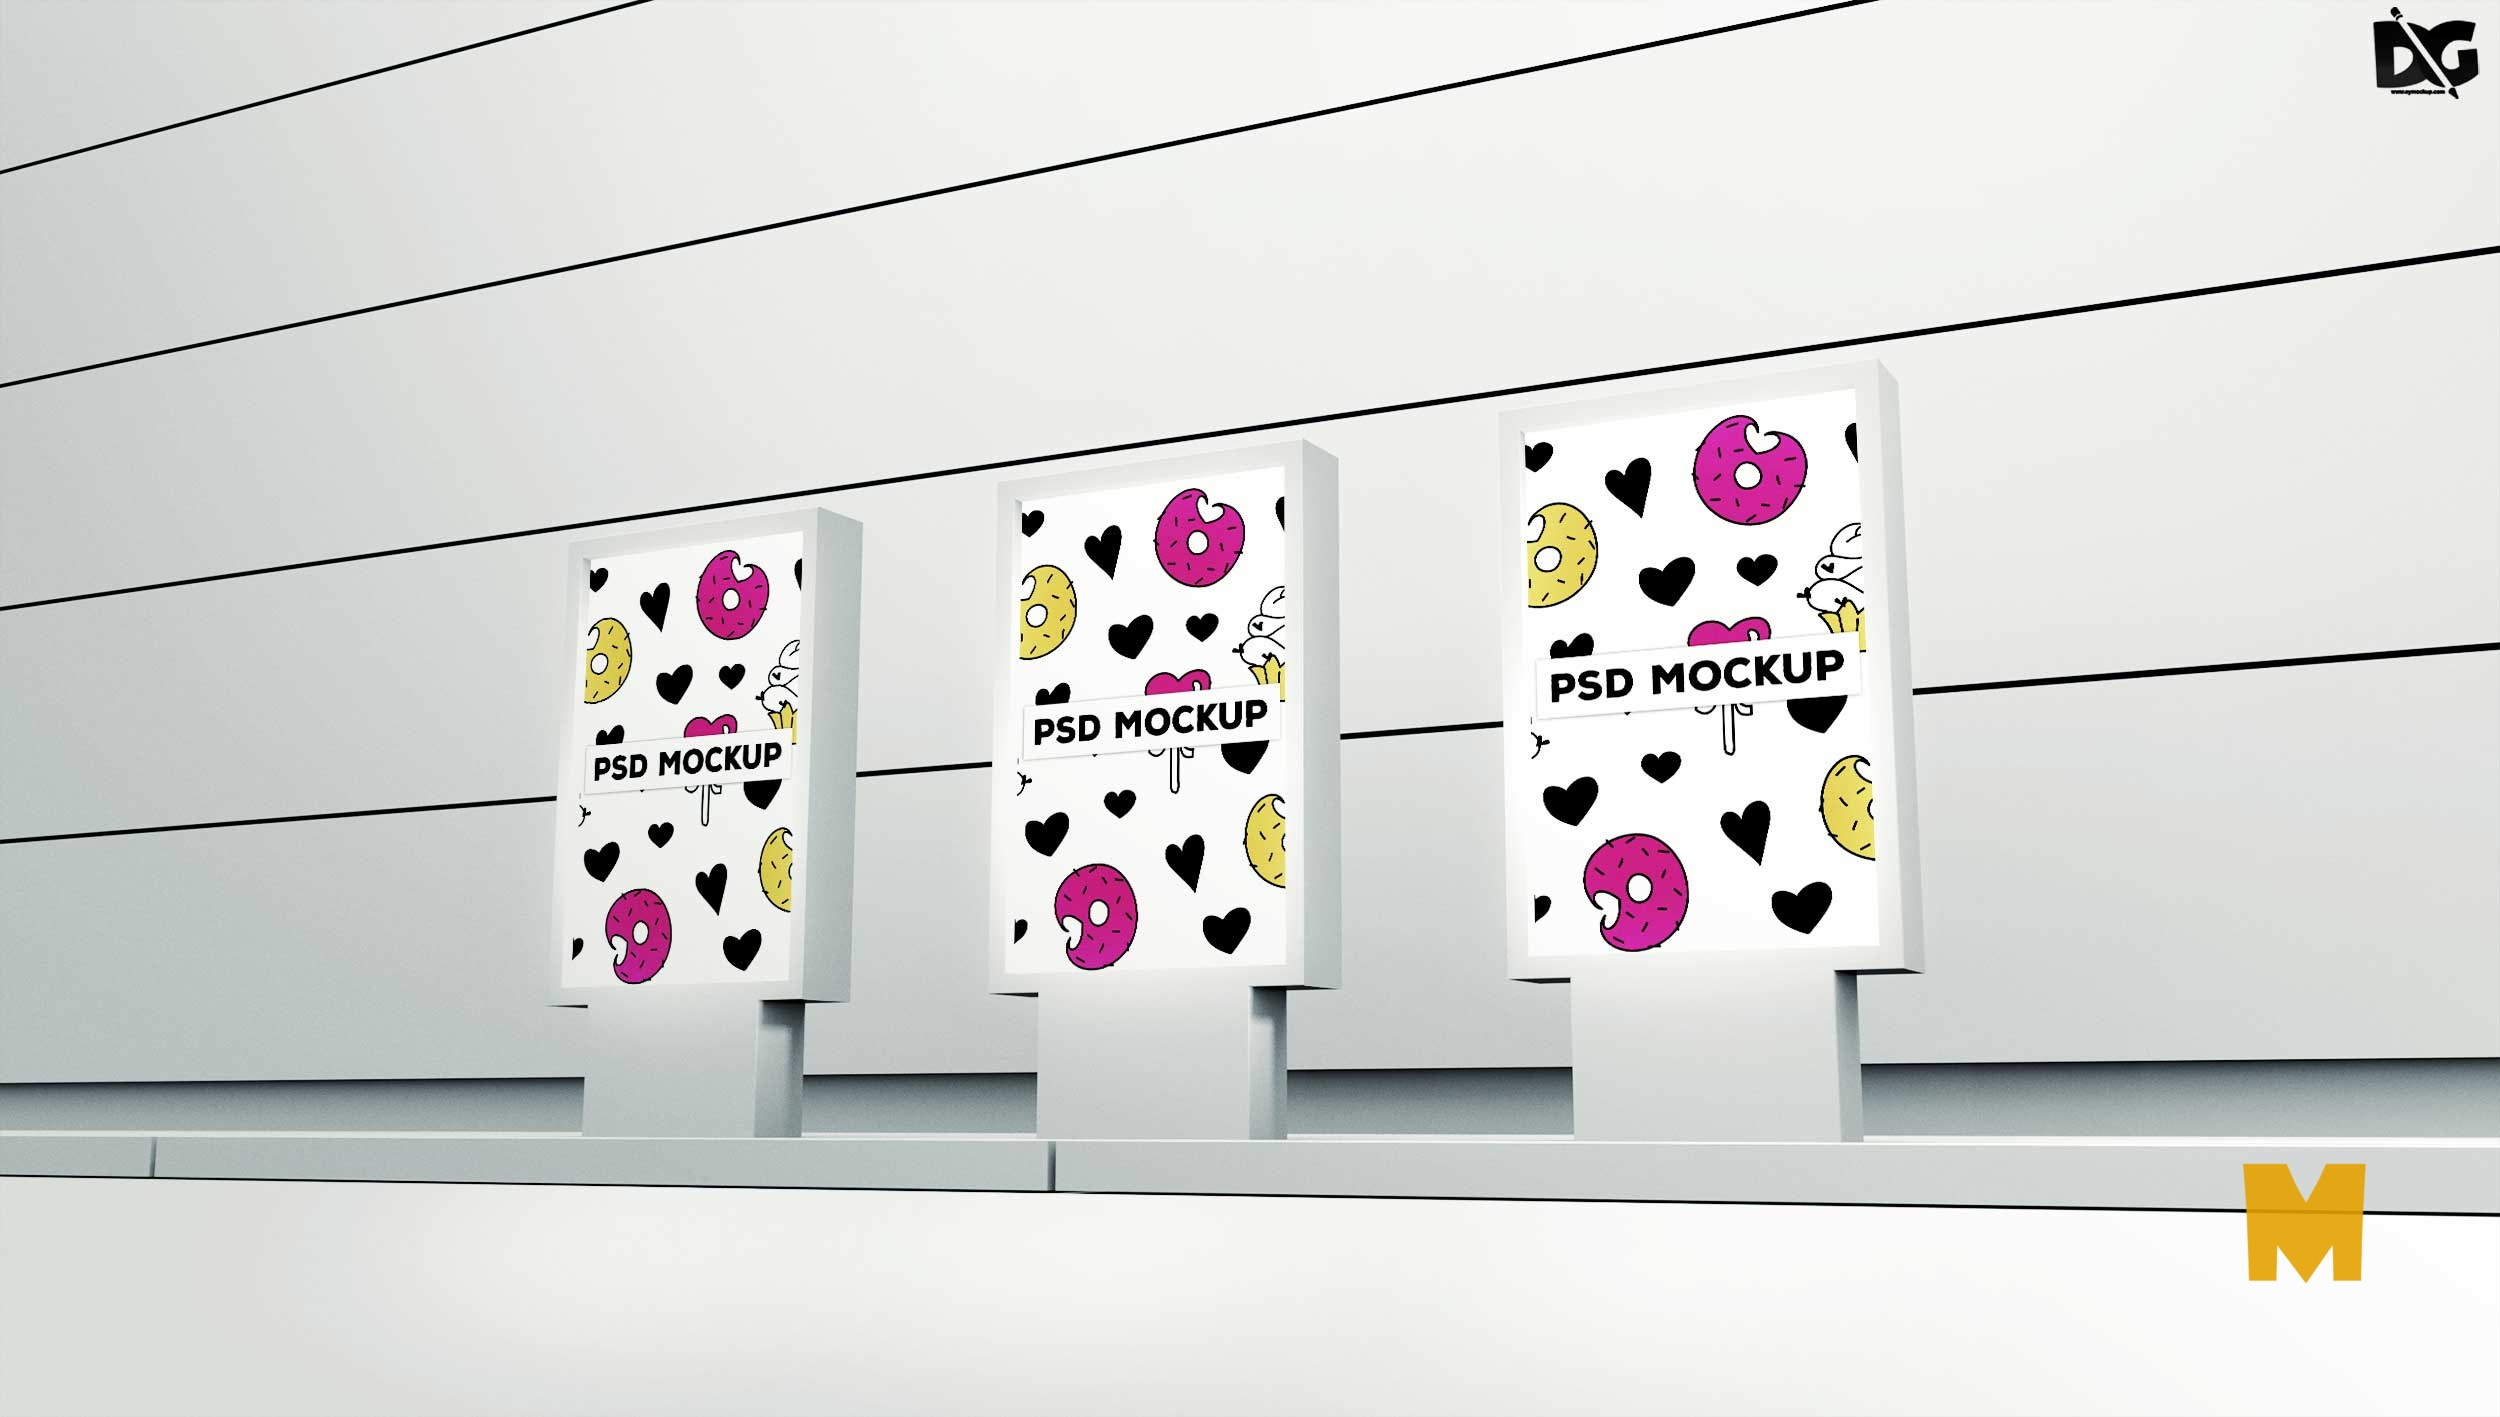 hoarding mockup psd free download